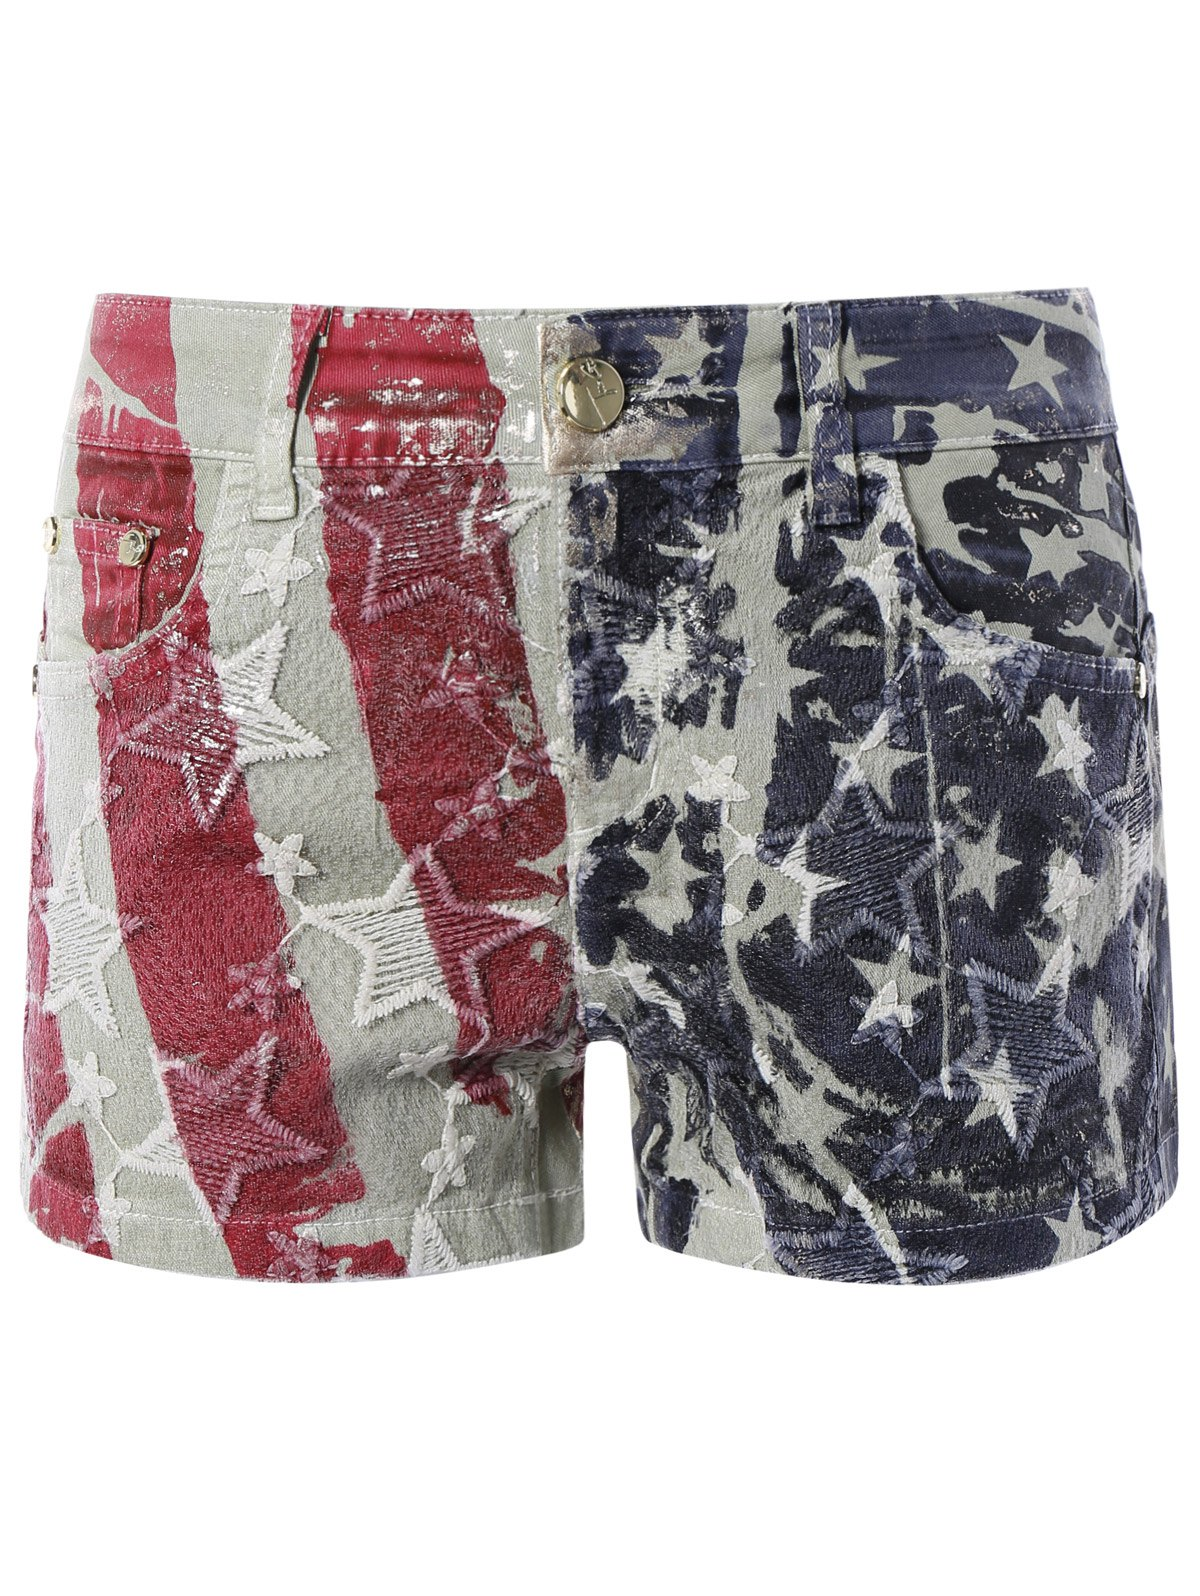 Chic Star Print Shorts - 30 COLORMIX